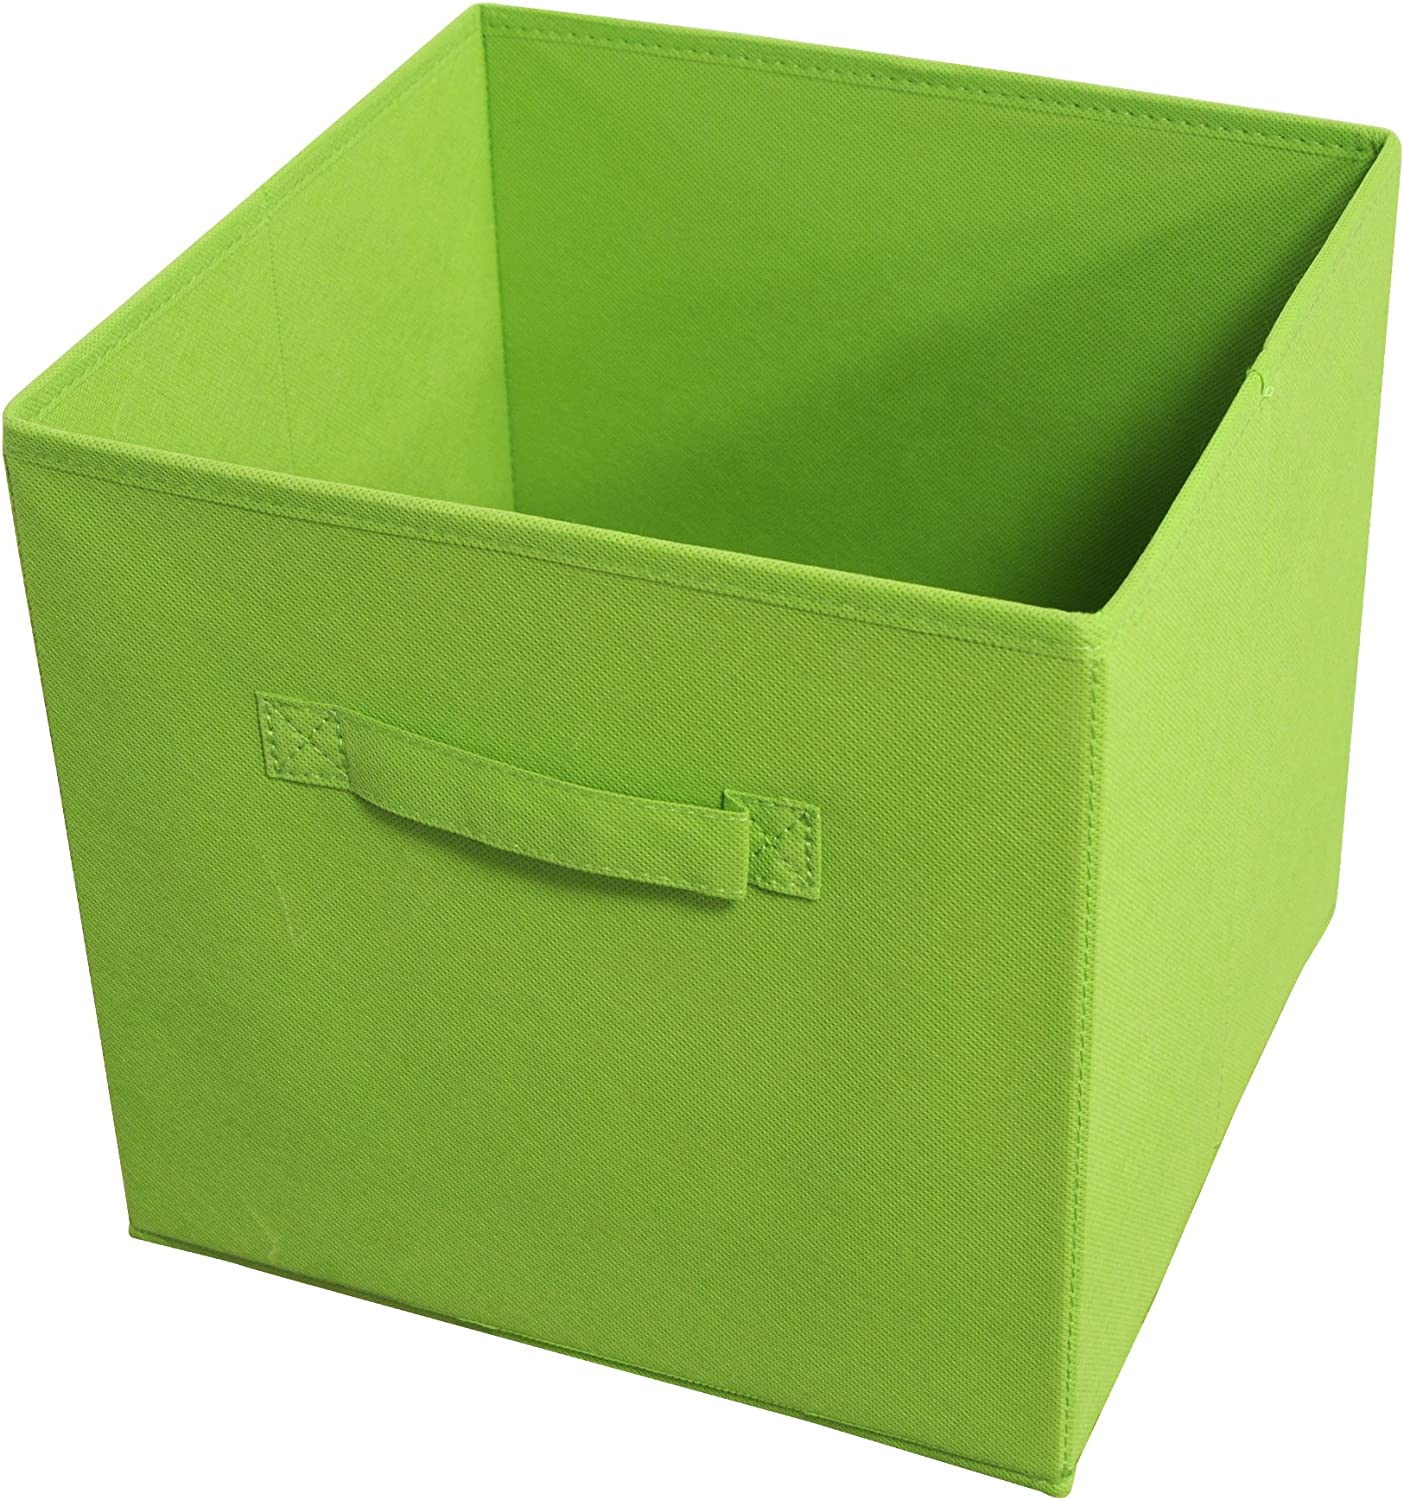 Achim Home Furnishings Collapsible Storage Bins, Set of 4, Green